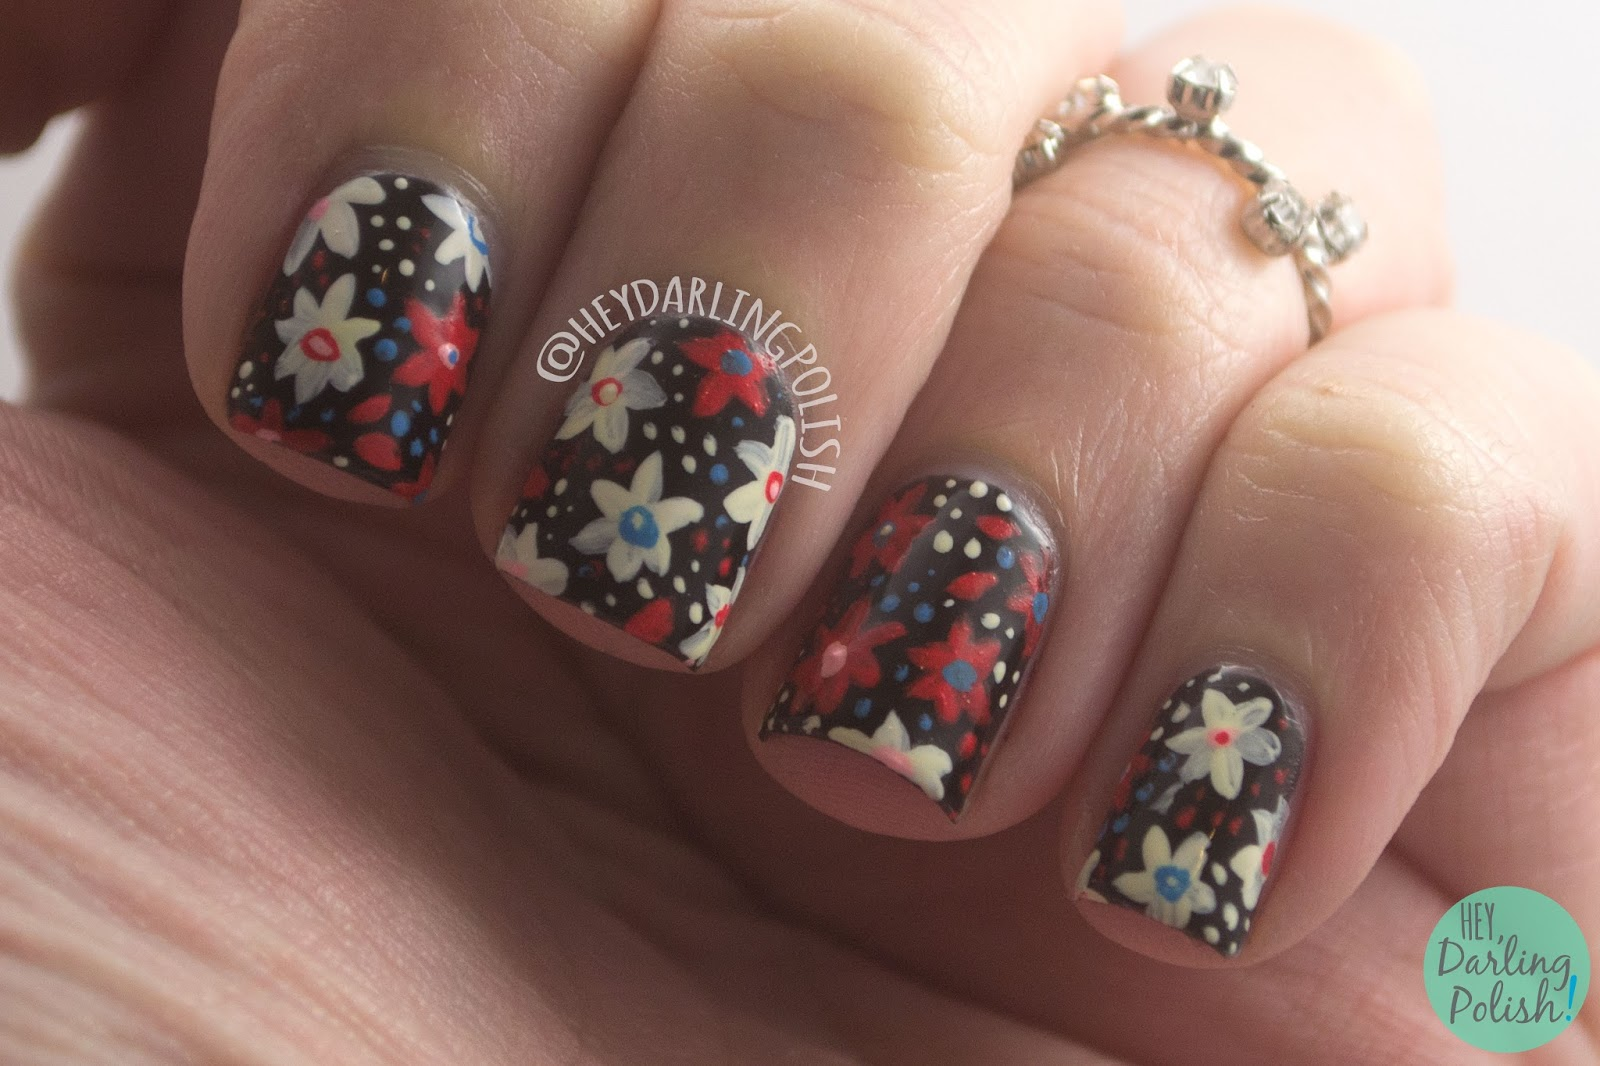 nails, nail art, nail polish, floral, flowers, red, blue, black, hey darling polish, pattern